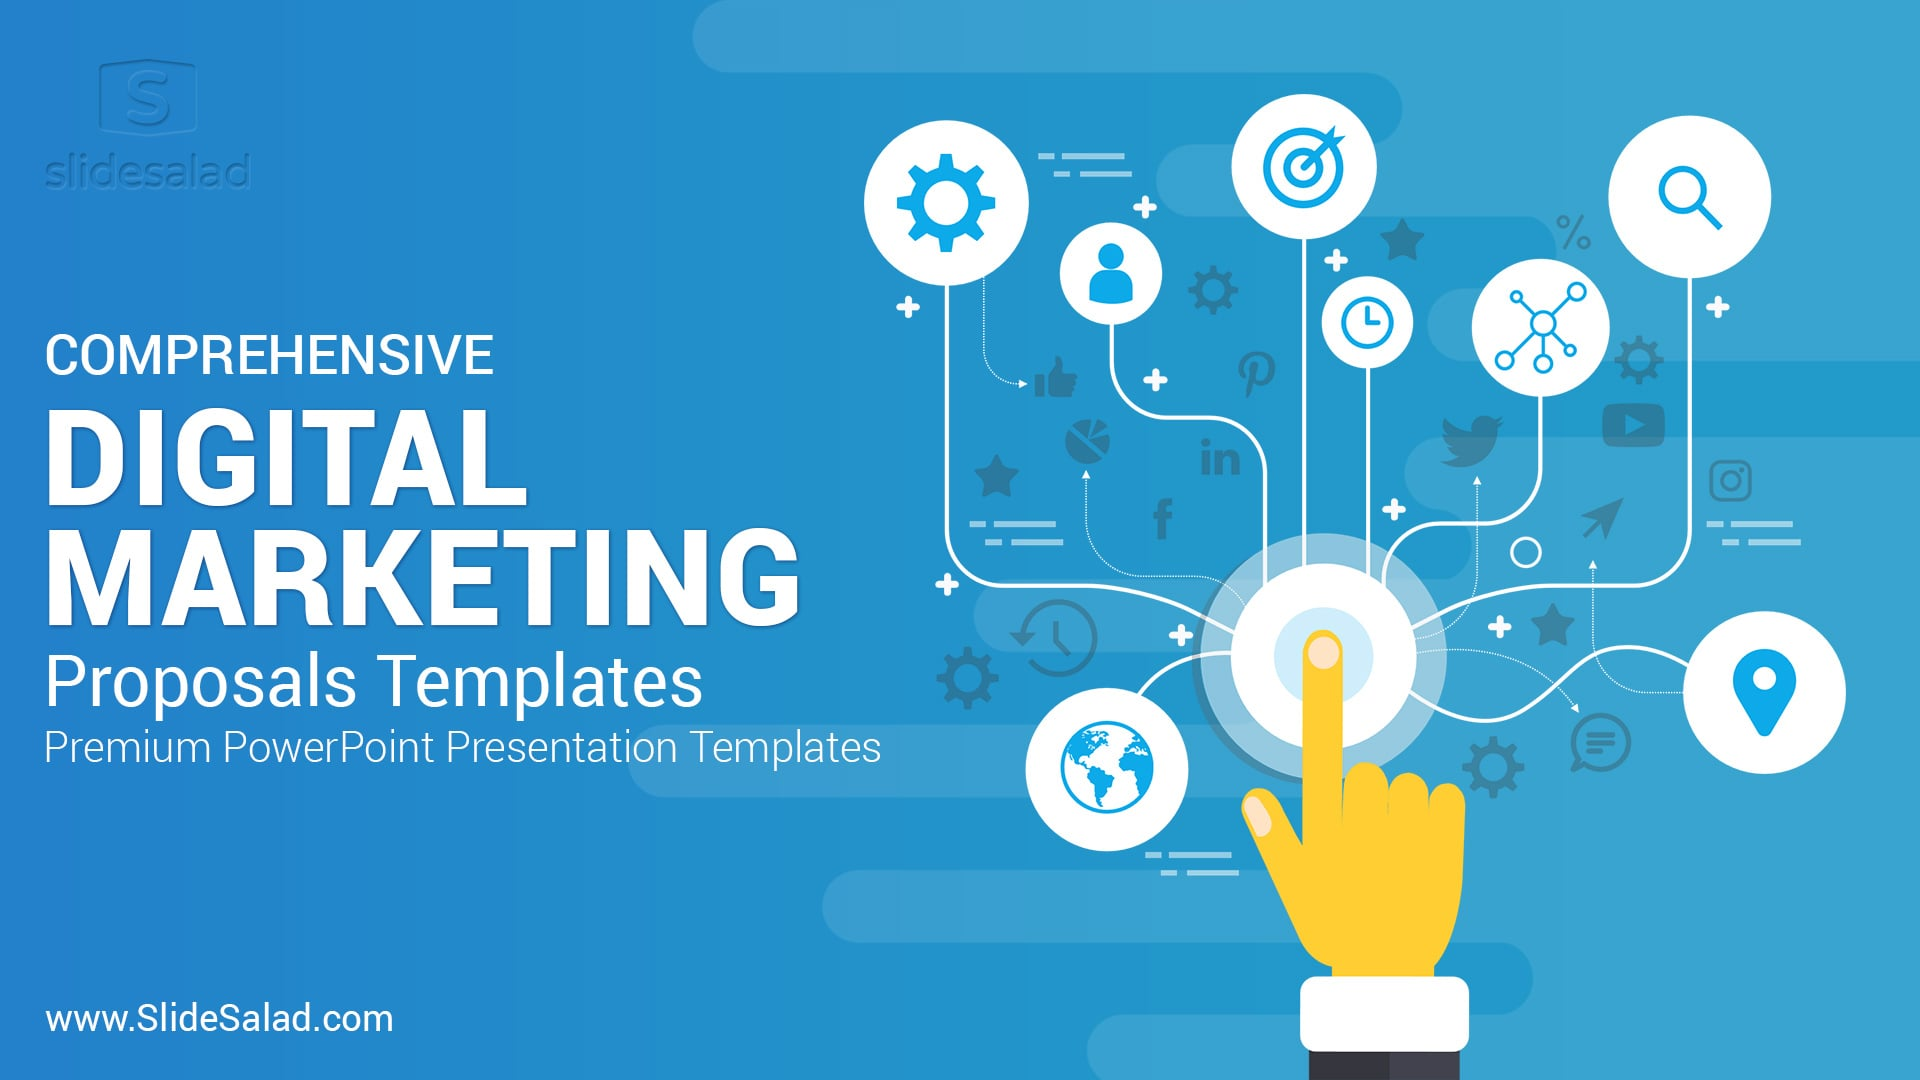 Best Digital Marketing Proposals PowerPoint Templates - Fully Animated PowerPoint Presentation Template